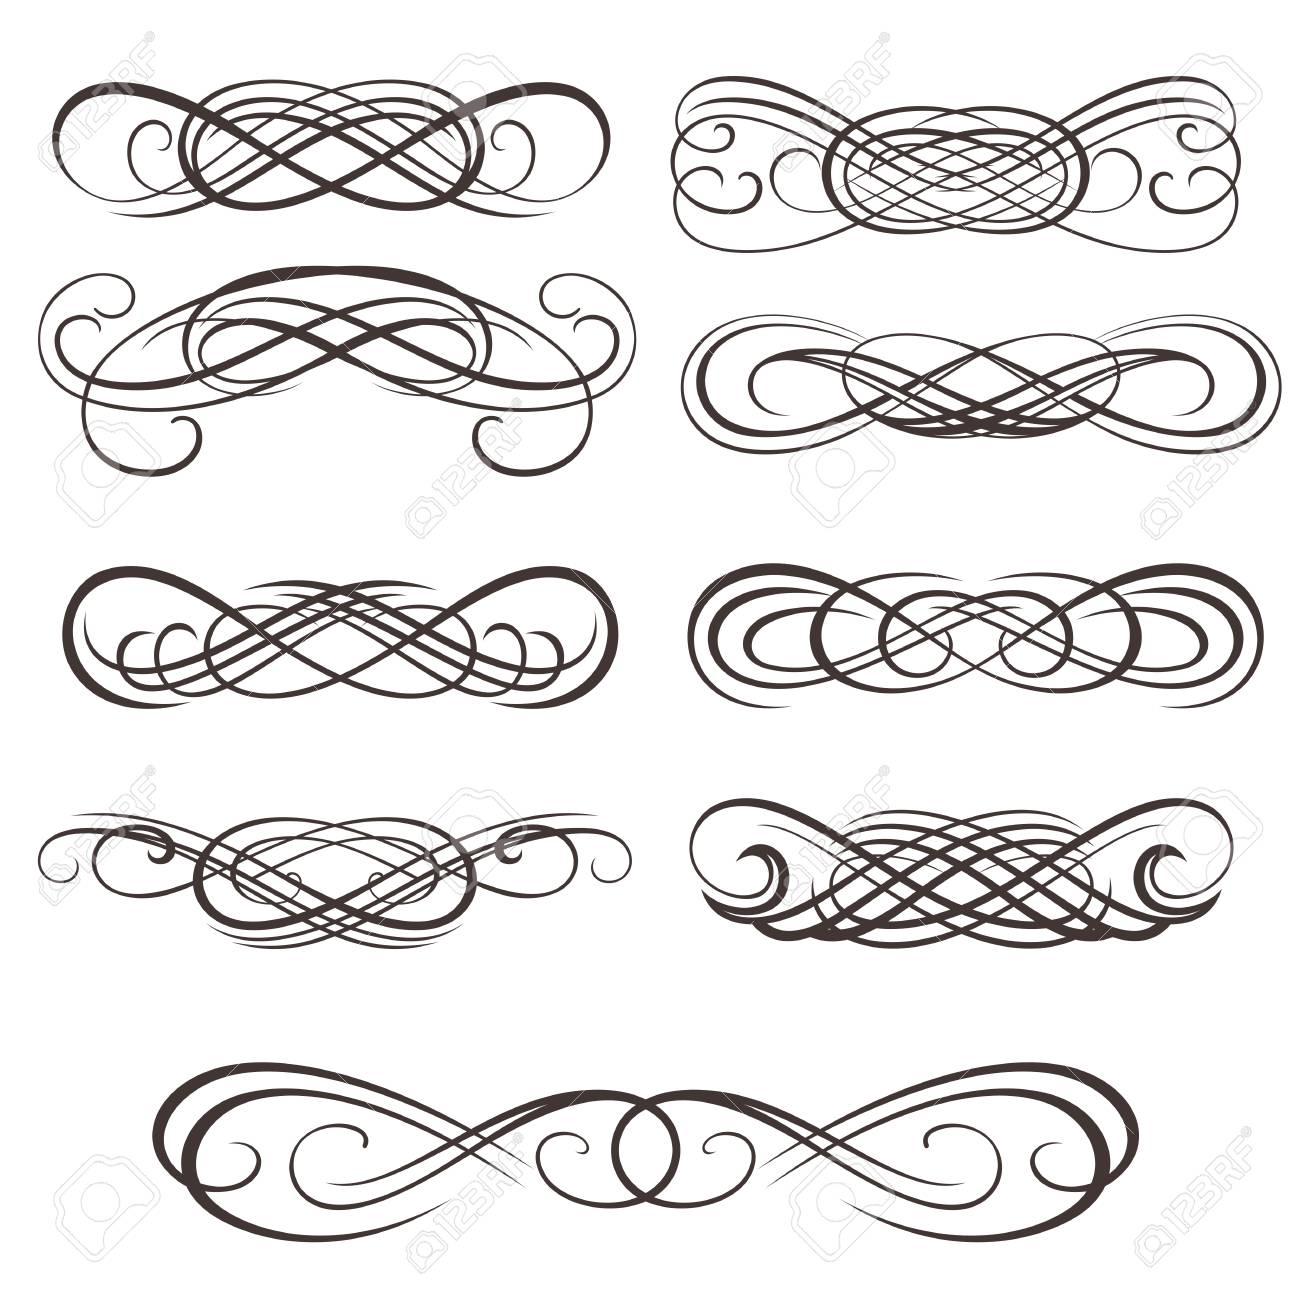 Infinity Symbols Vector Swirl Elements For Your Design Royalty Free